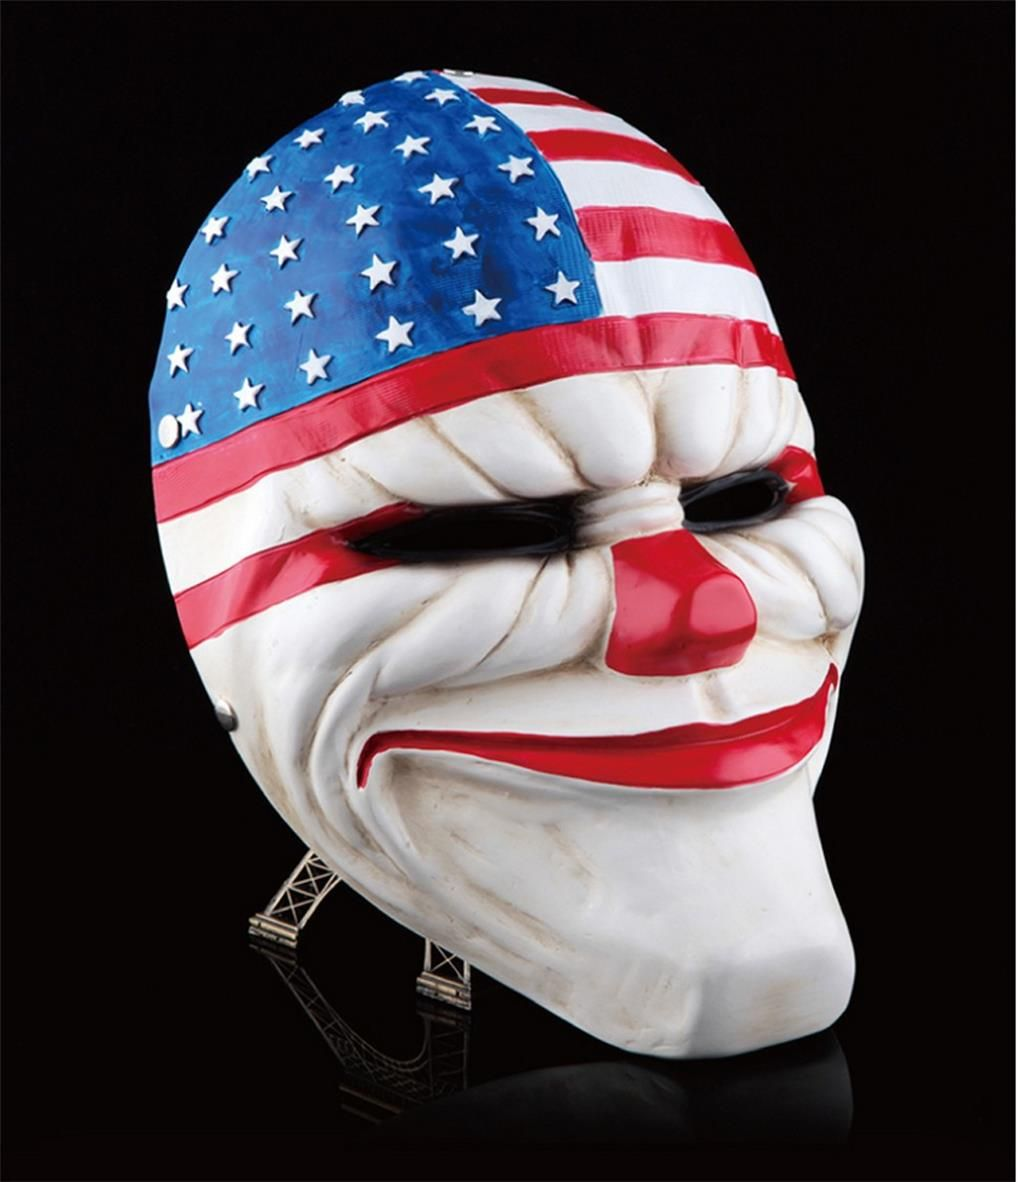 Online Payday 2 Dallas Mask Heist Dallas Costume Props Collection ...